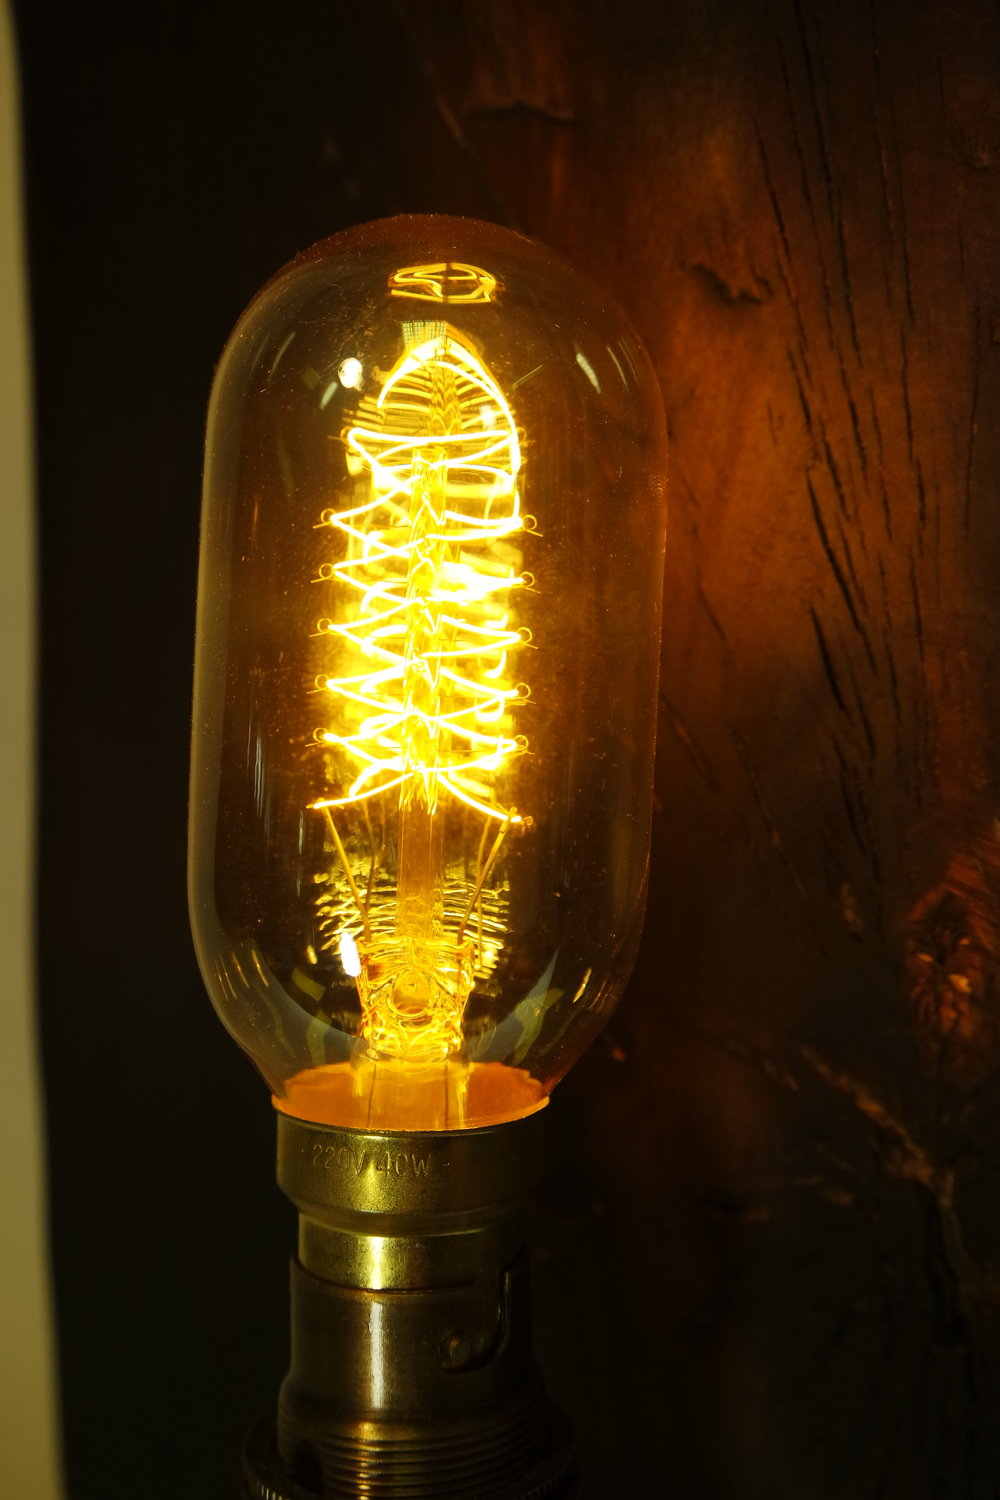 Close Up of the eddision Light bulb